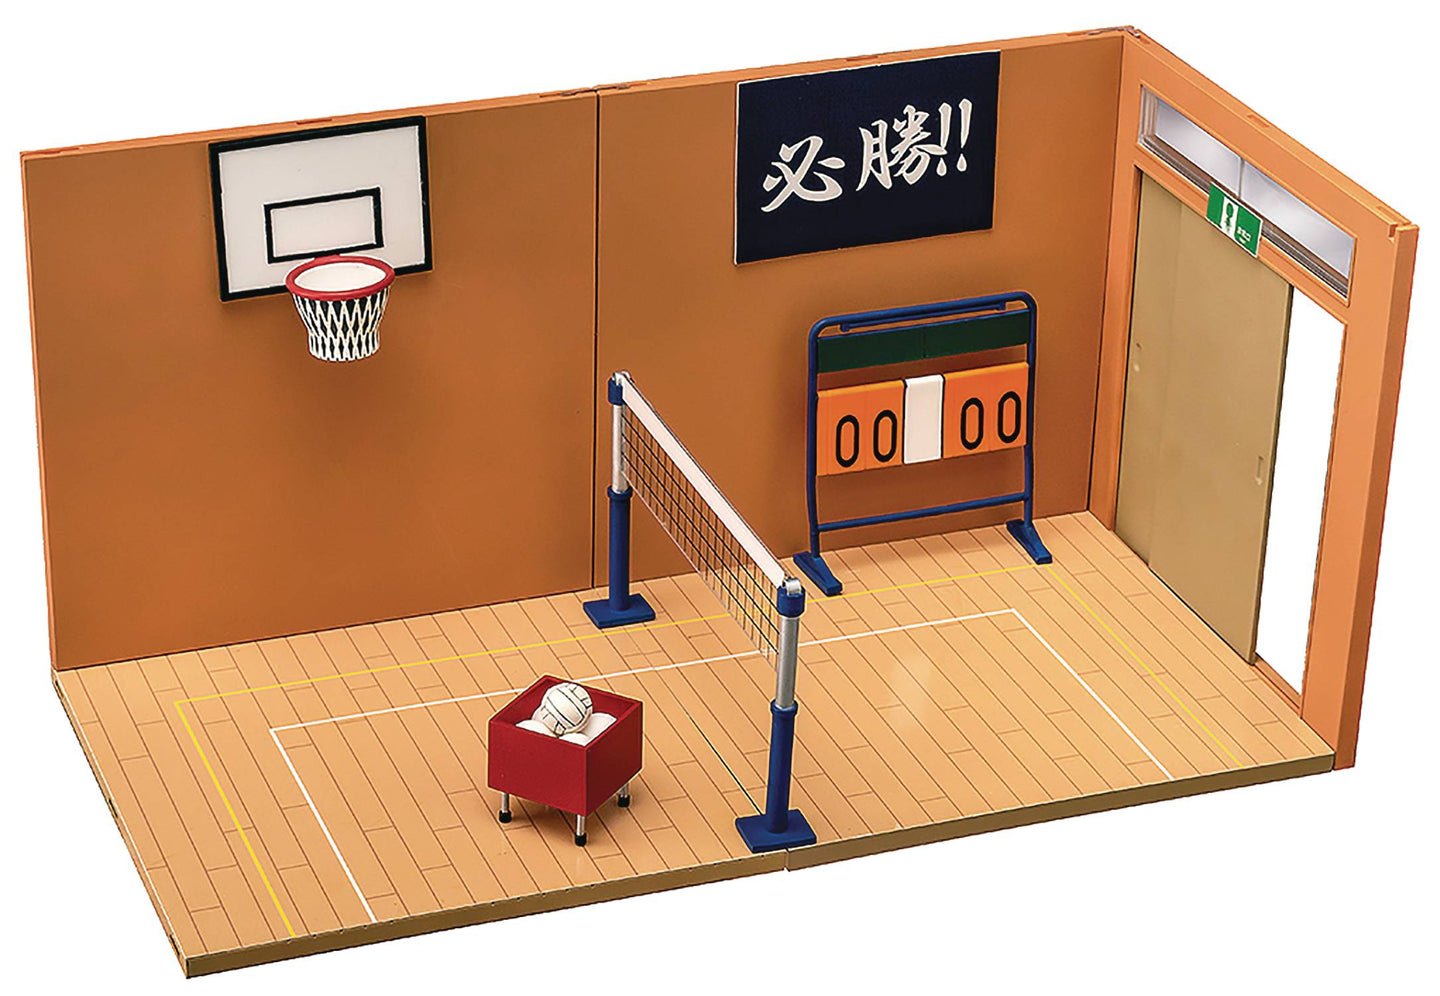 Nendoroid Play Set 07 Figure Diorama Gymnasium Set A